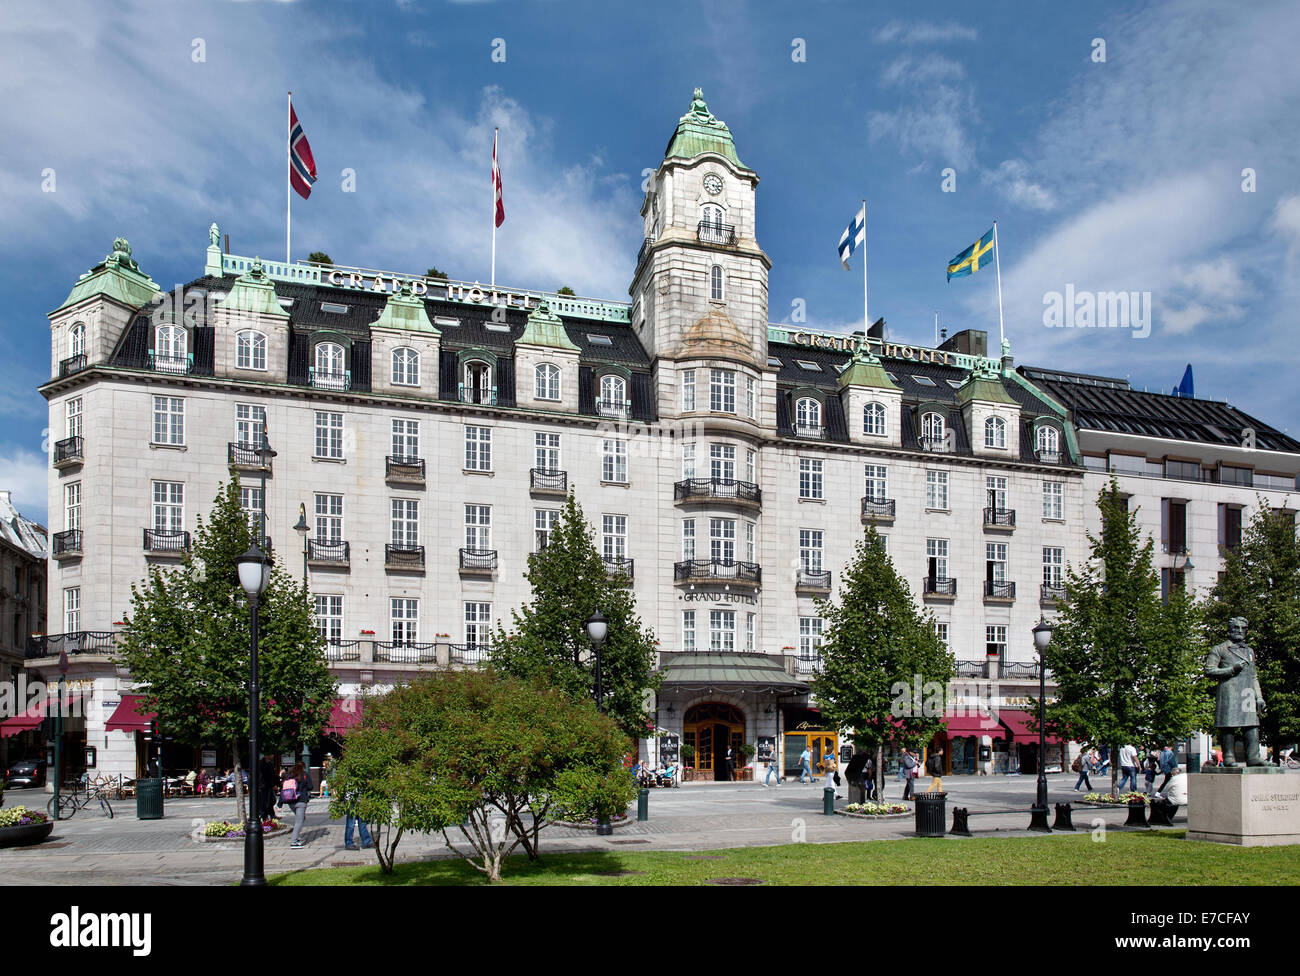 grand hotel oslo norway stock photo royalty free image. Black Bedroom Furniture Sets. Home Design Ideas